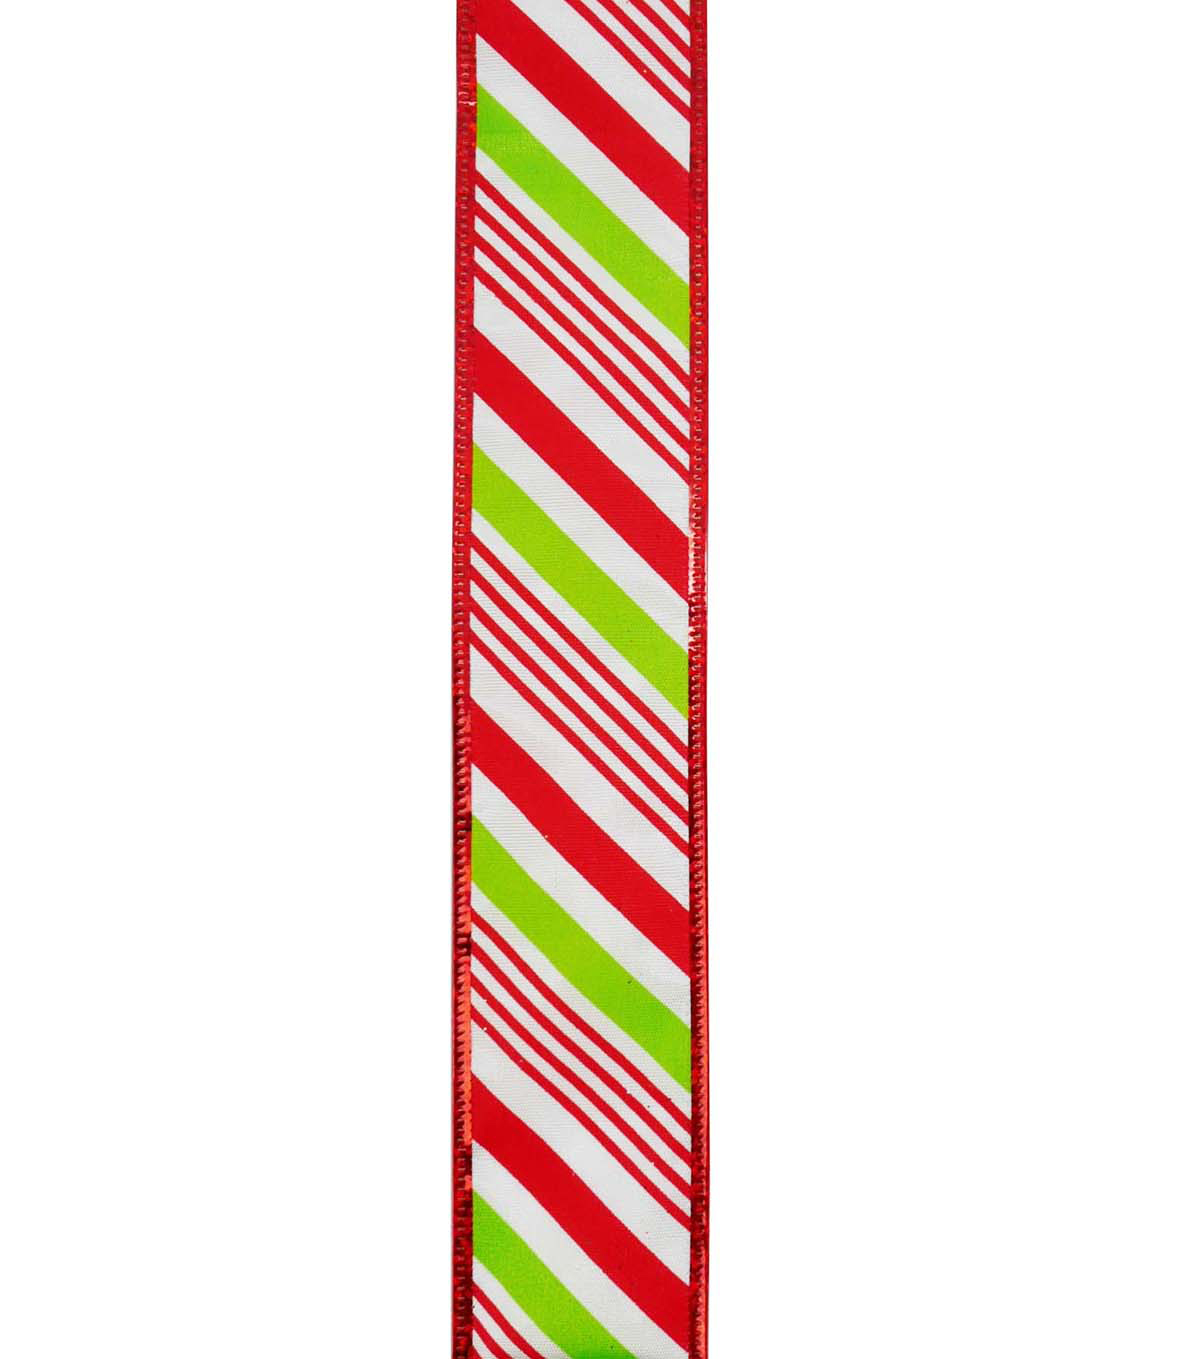 Maker\u0027s Holiday Ribbon 1.5\u0027\u0027x30\u0027-Red, White & Green Candy Stripes